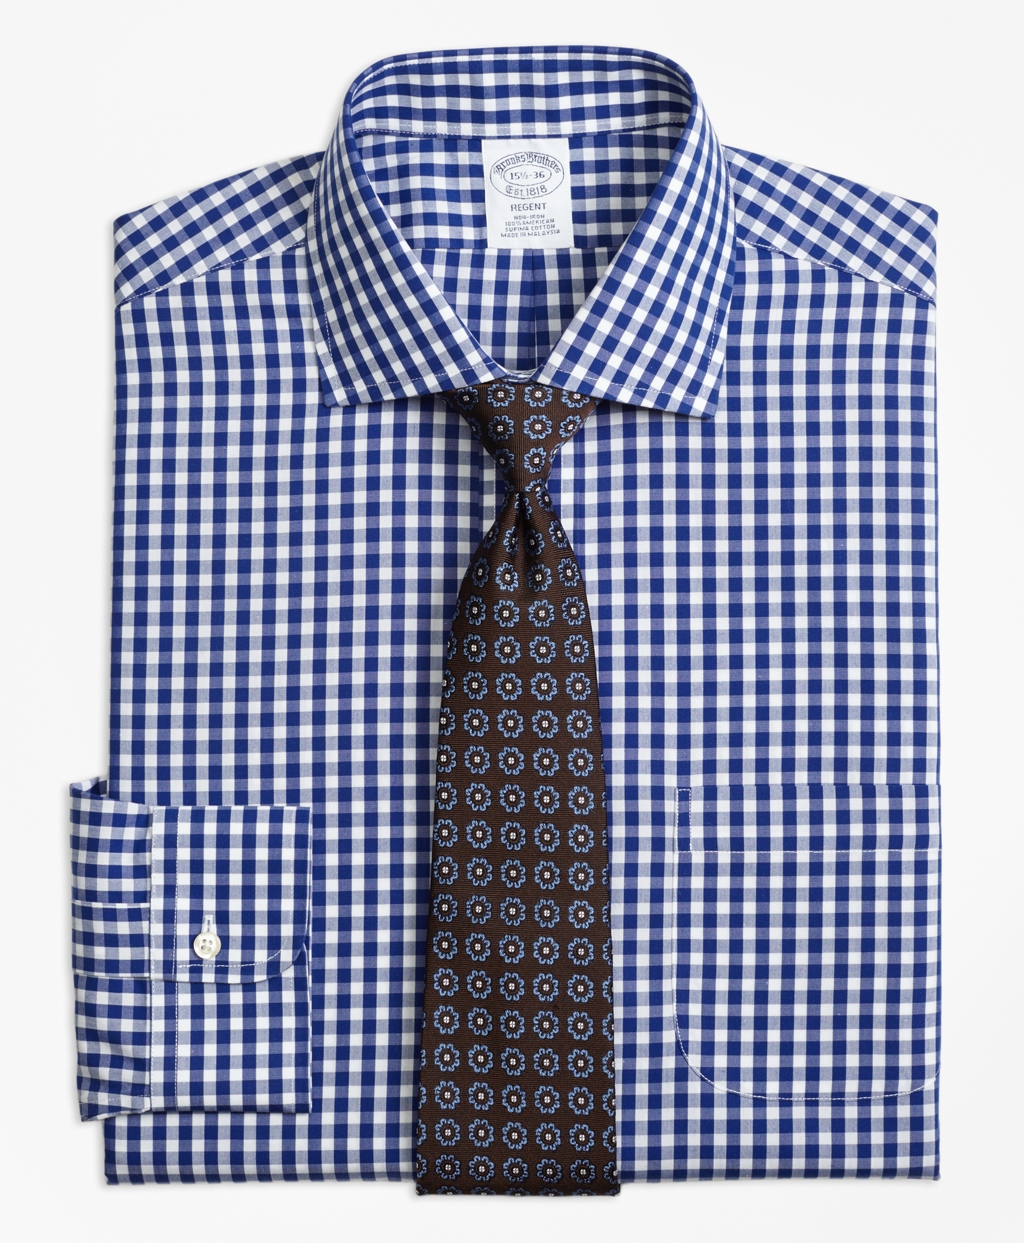 Non-Iron Regent Fit Gingham Dress Shirt - Brooks Brothers